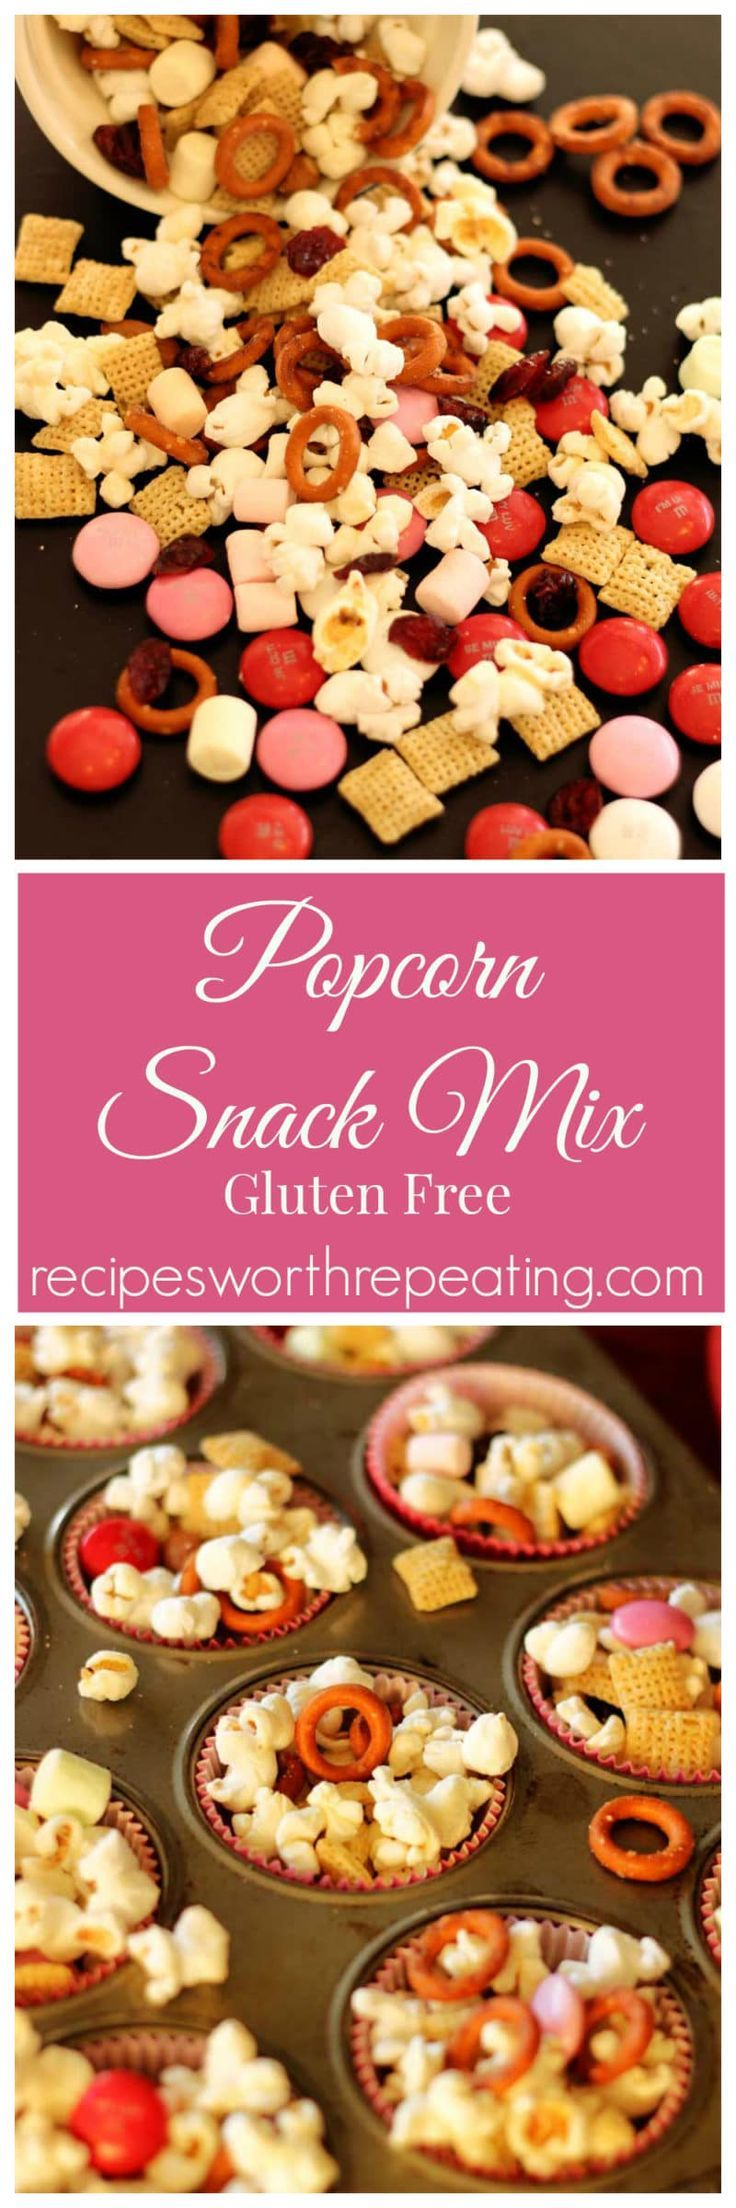 This Popcorn Snack Mix is delicious and packed full of protein! This snack mix contains protein packed popcorn, gluten free pretzels, rice chex, chocolate and more! Bursting with a sweet and salty flavor, this is a perfect snack that everyone can enjoy! Perfect for Valentine's Day! #popcorn #ValentinesDay #snack #snackmix #glutenfree | recipesworthrepeating.com